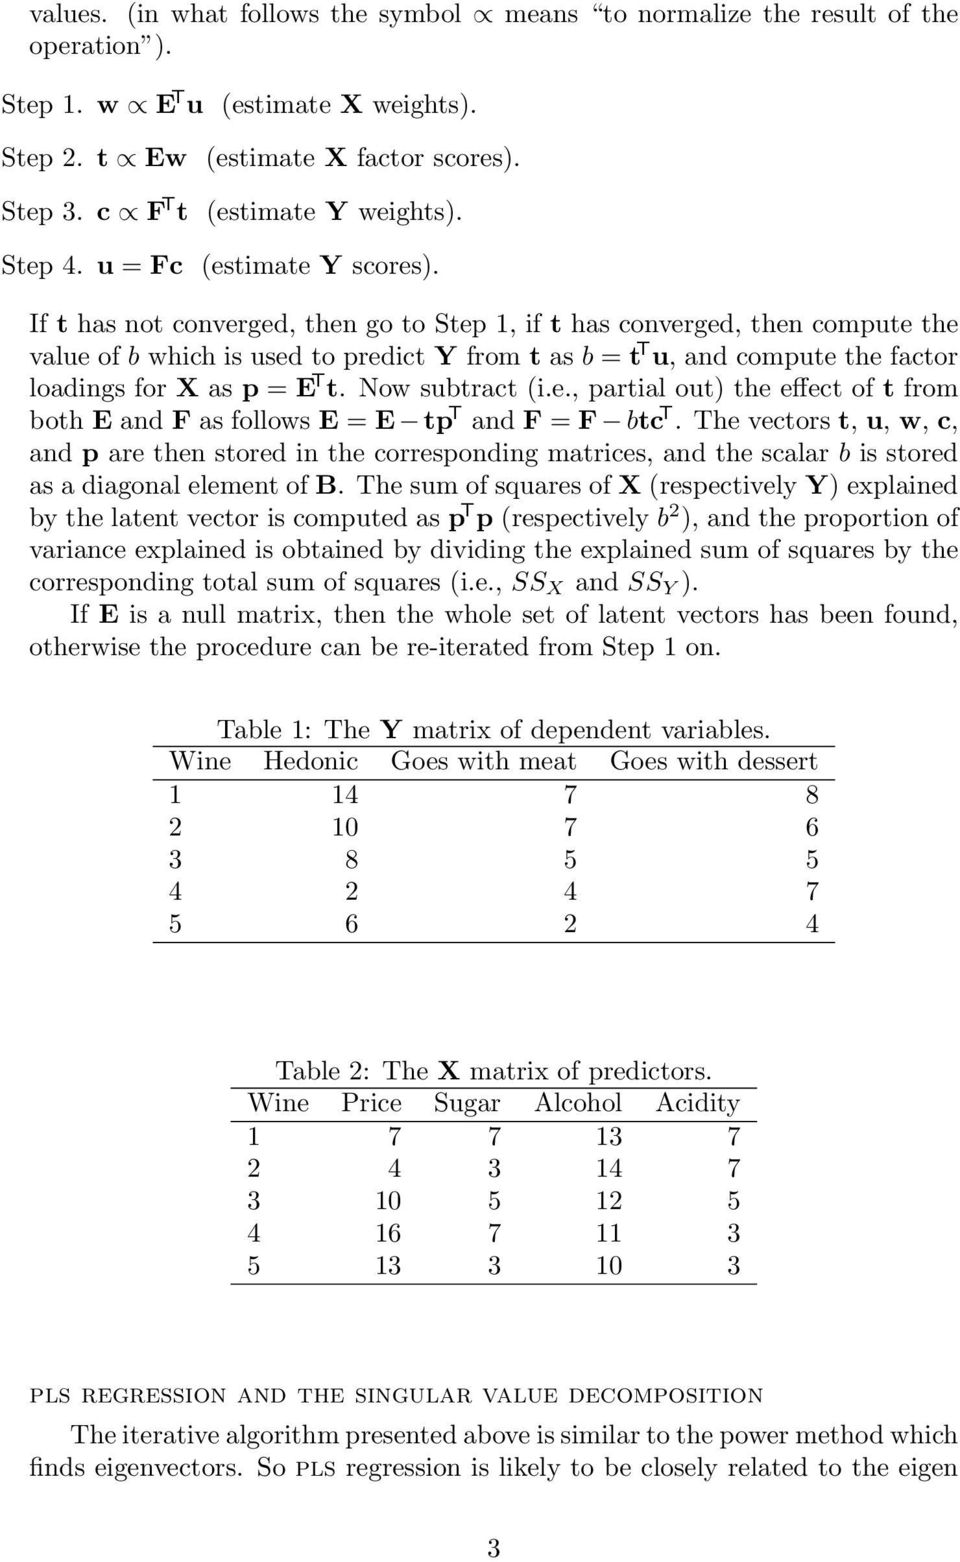 If t has not converged, then go to Step 1, if t has converged, then compute the value of b which is used to predict Y from t as b = t T u, and compute the factor loadings for X as p = E T t.